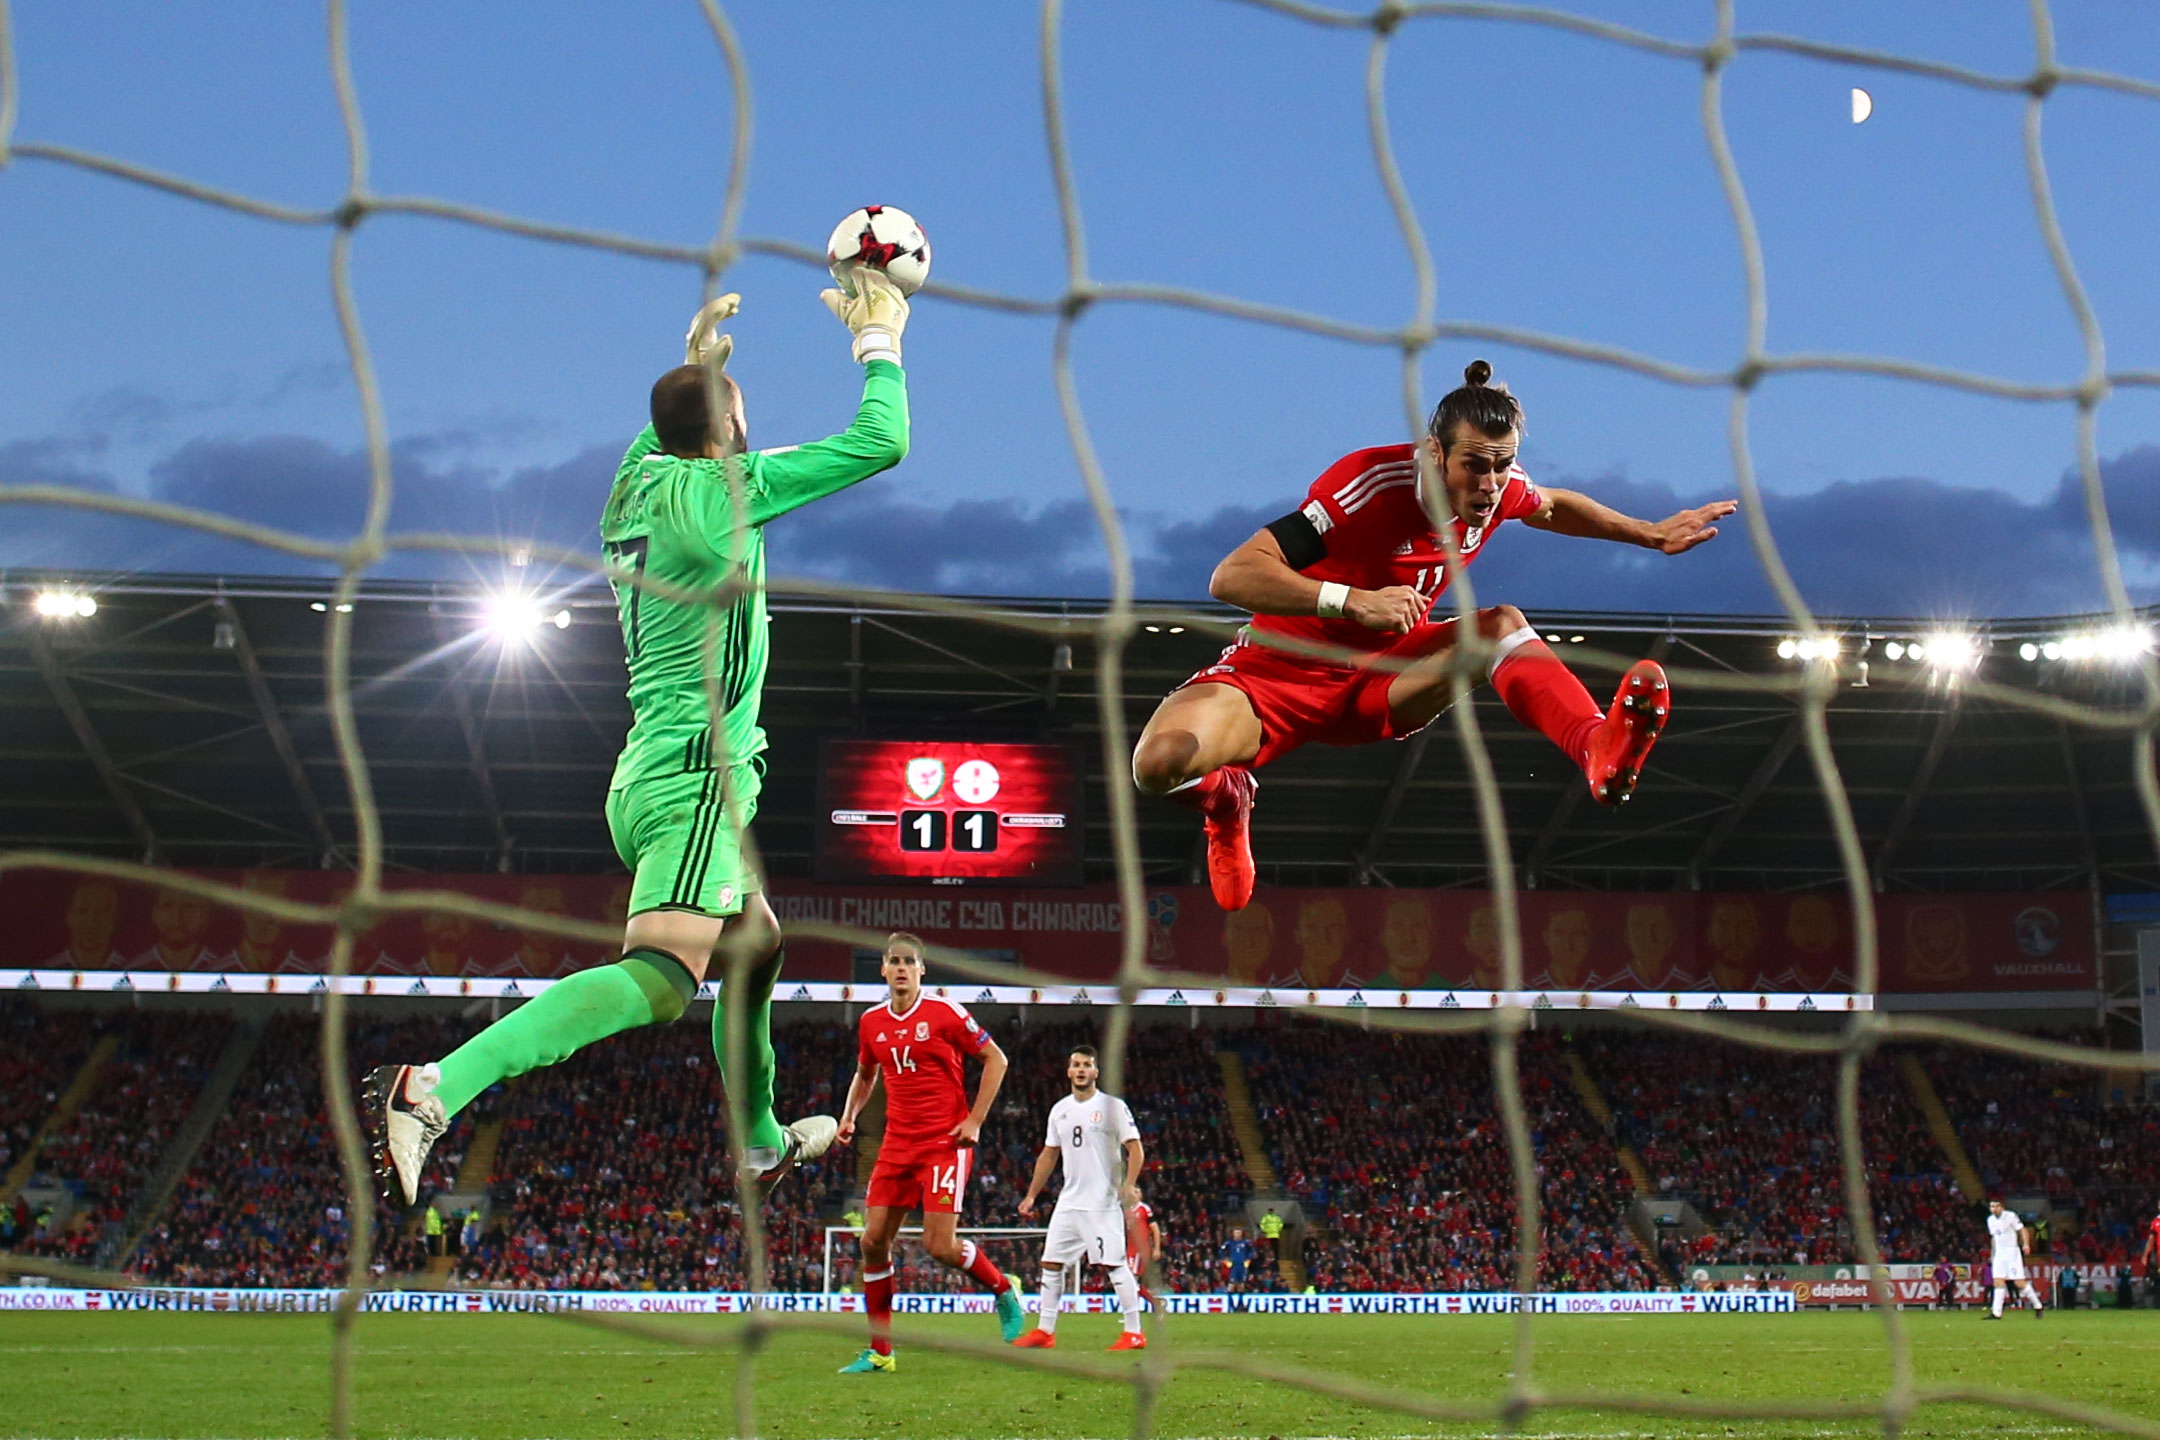 Gareth Bale leaps with Giorgi Loria, Wales v Georgia, World Cup Qualifier,Cardiff, October 2016